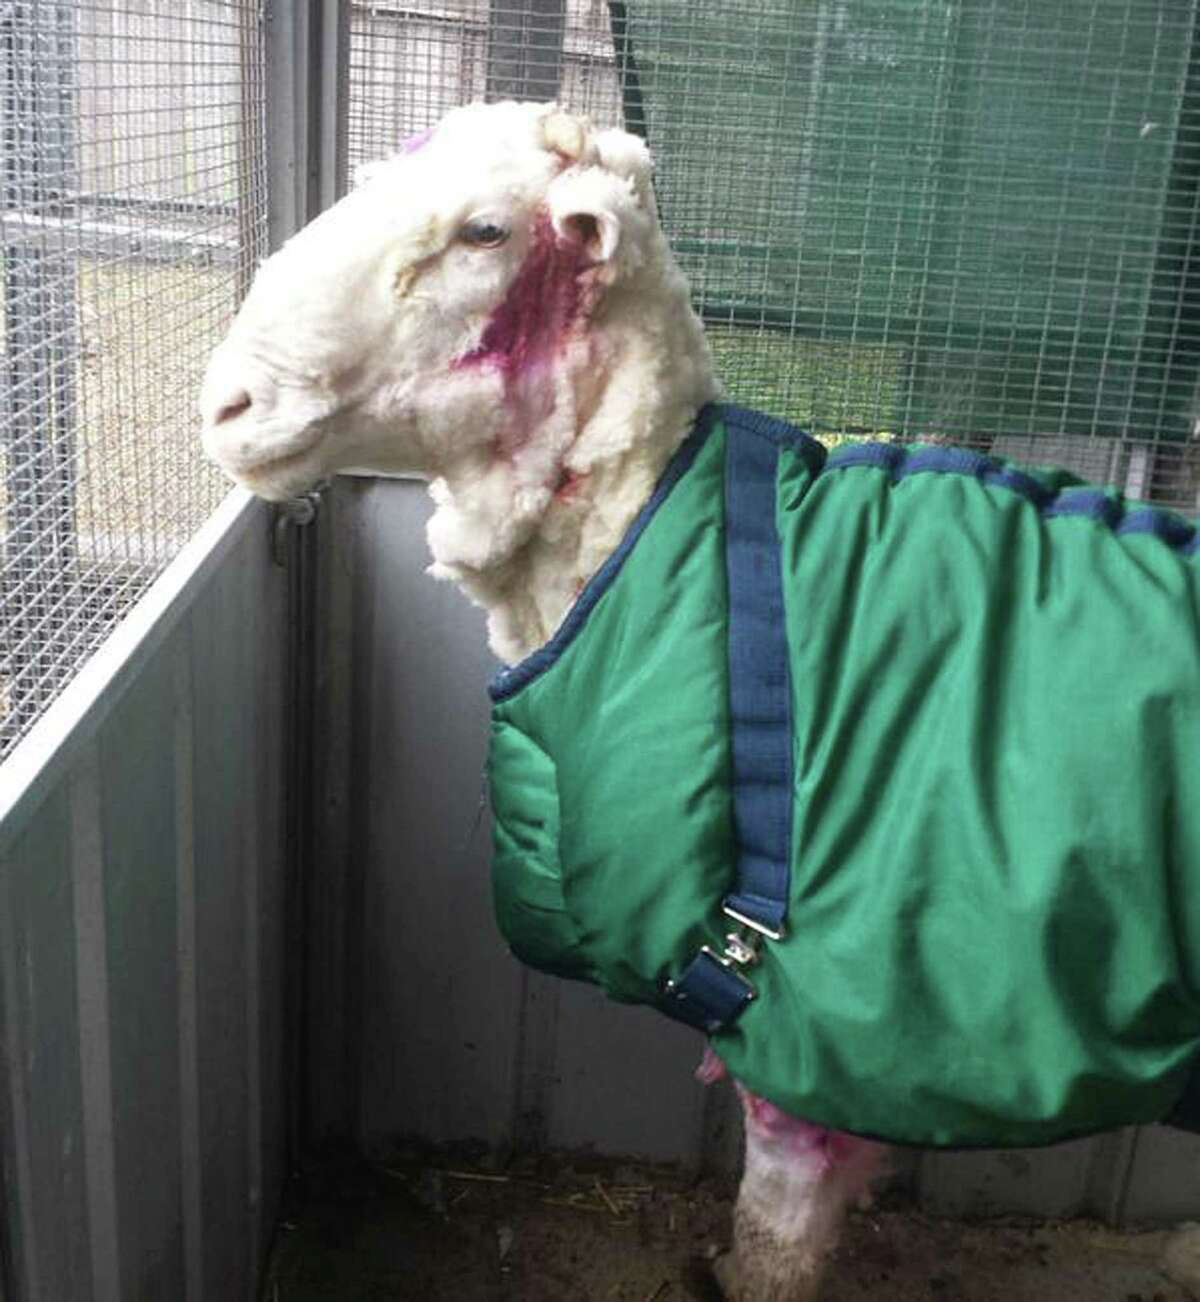 RSPCA ACT/ via AP In this photo provided by the RSPCA/Australian Capital Territory, a sheep found in Australian scrubland stands in a pen after it was shorn for perhaps the first time in Canberra, Australia, Thursday, Sept. 3, 2015. The wild, castrated merino ram dubbed Chris, yielded 40 kilograms (89 pounds) of wool ó the equivalent of 30 sweaters ó and shedding almost half his body weight.